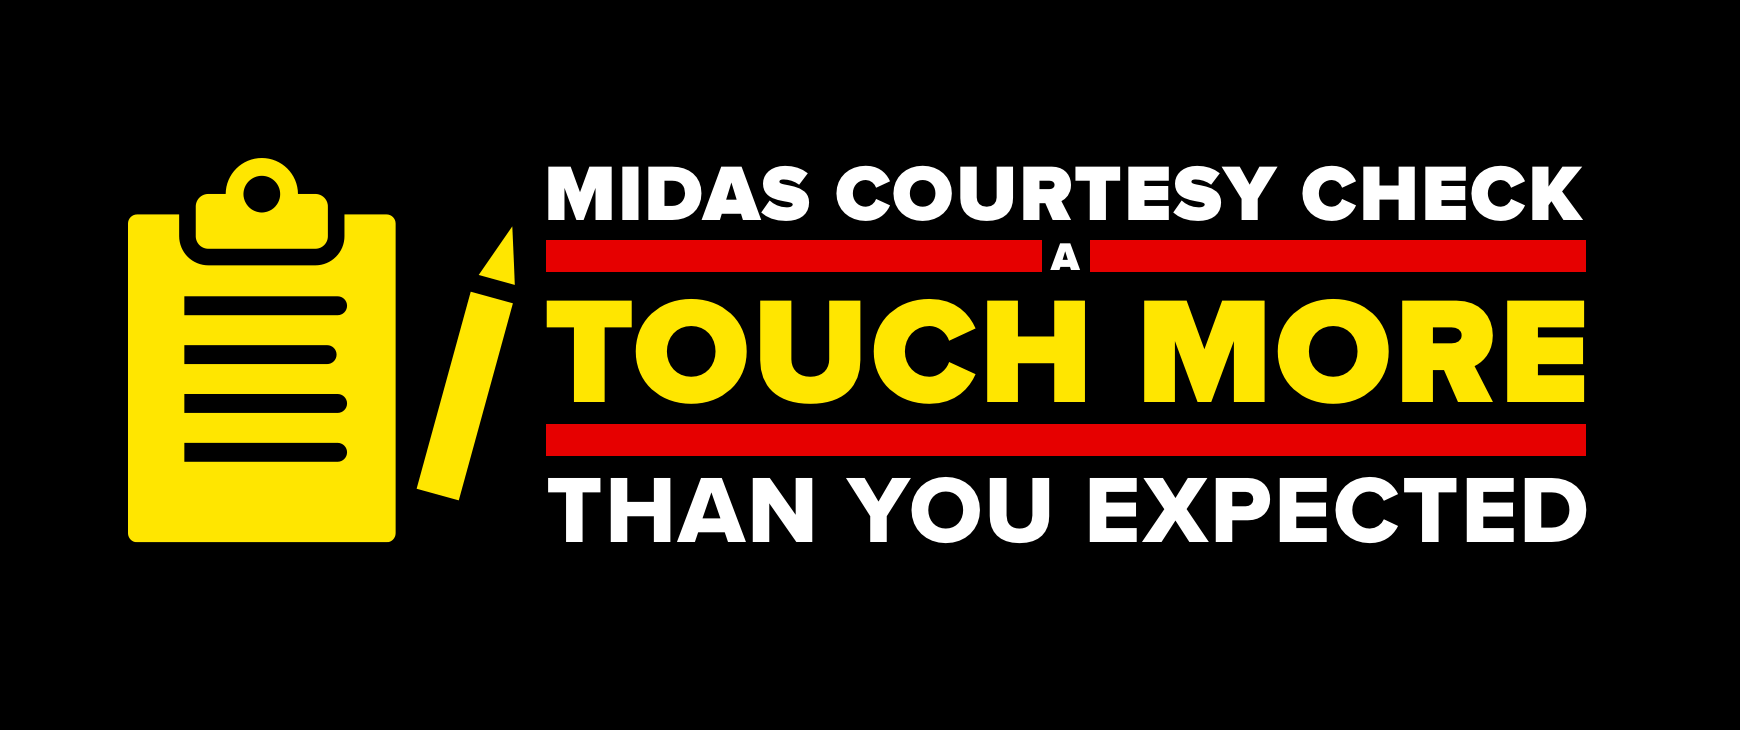 Midas Courtesy Check. A touch more than you expected.